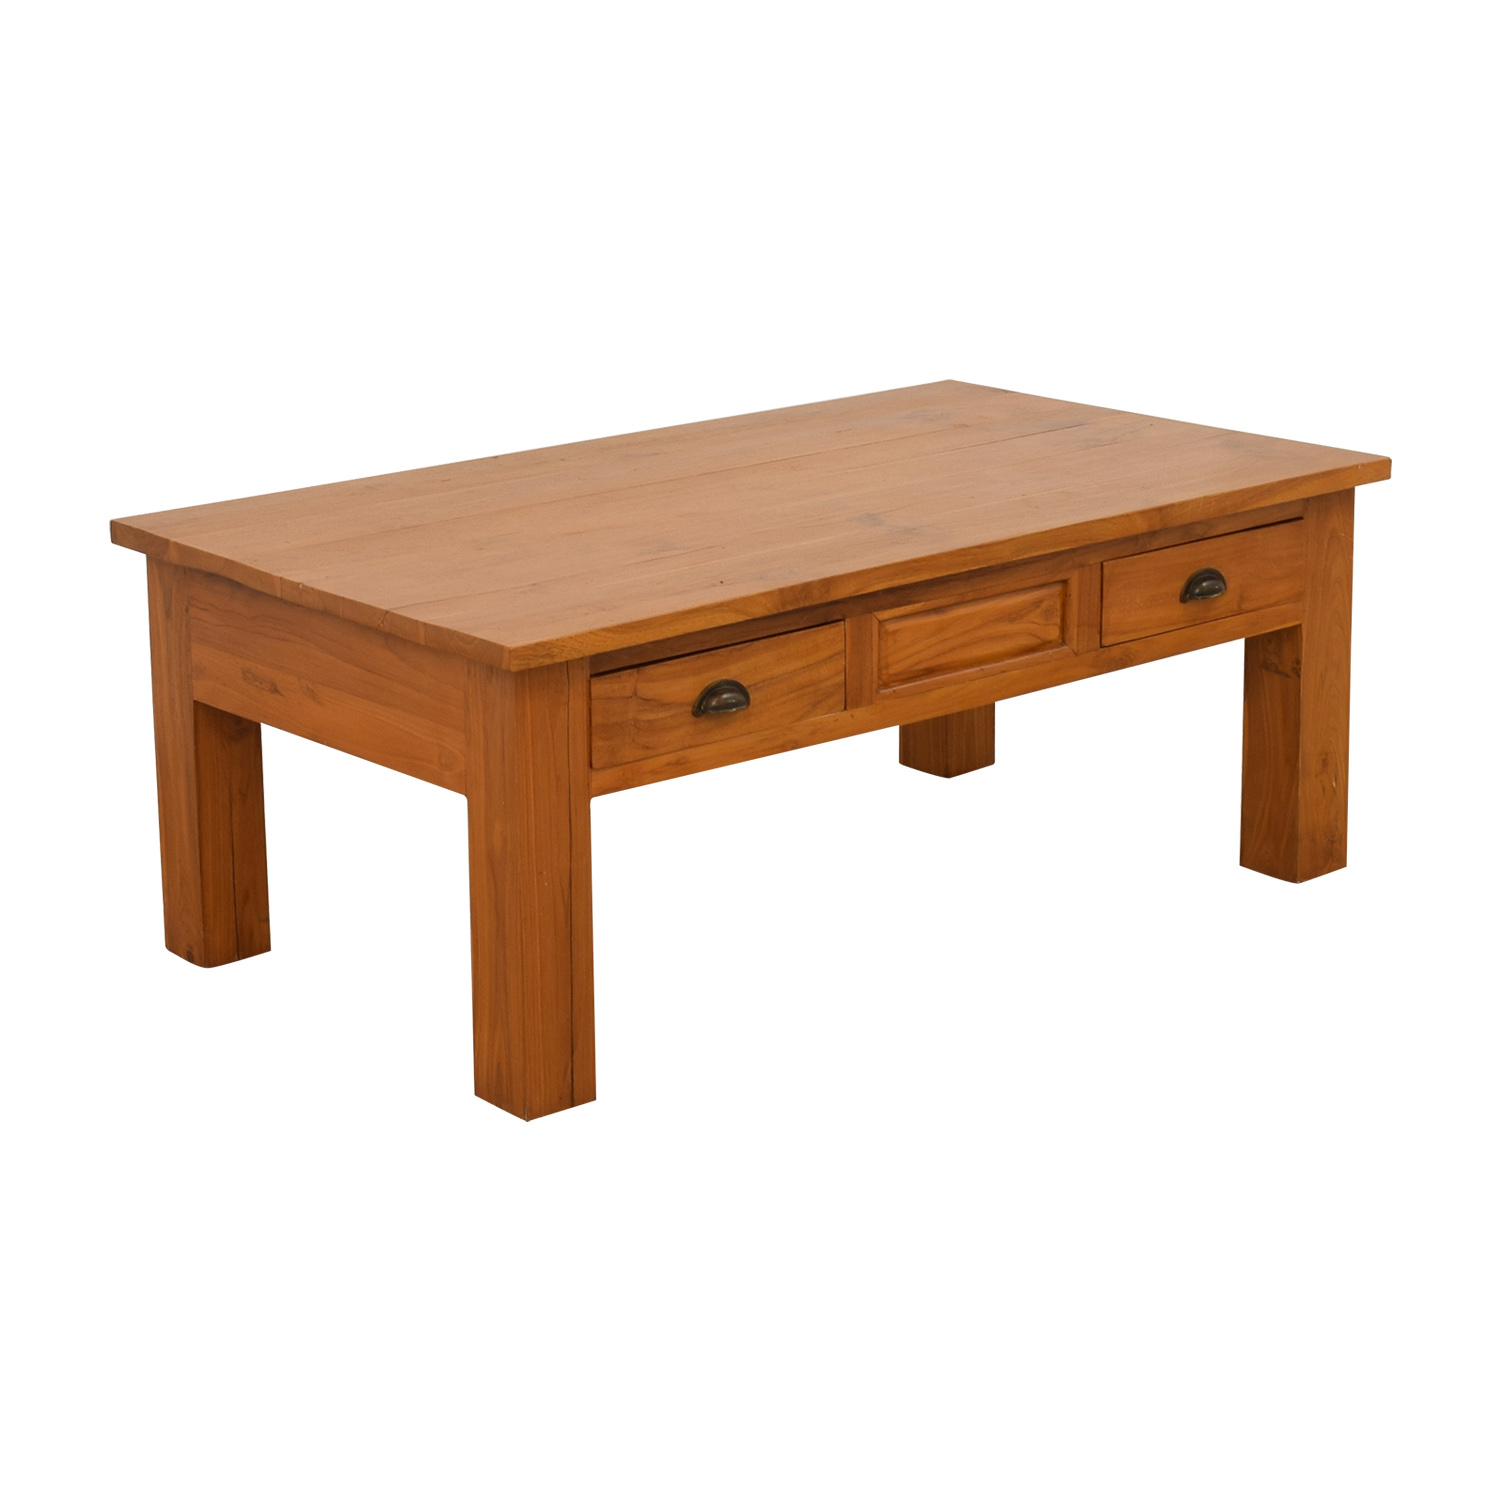 90 Off Balinese Teak Two Drawer Coffee Table Tables